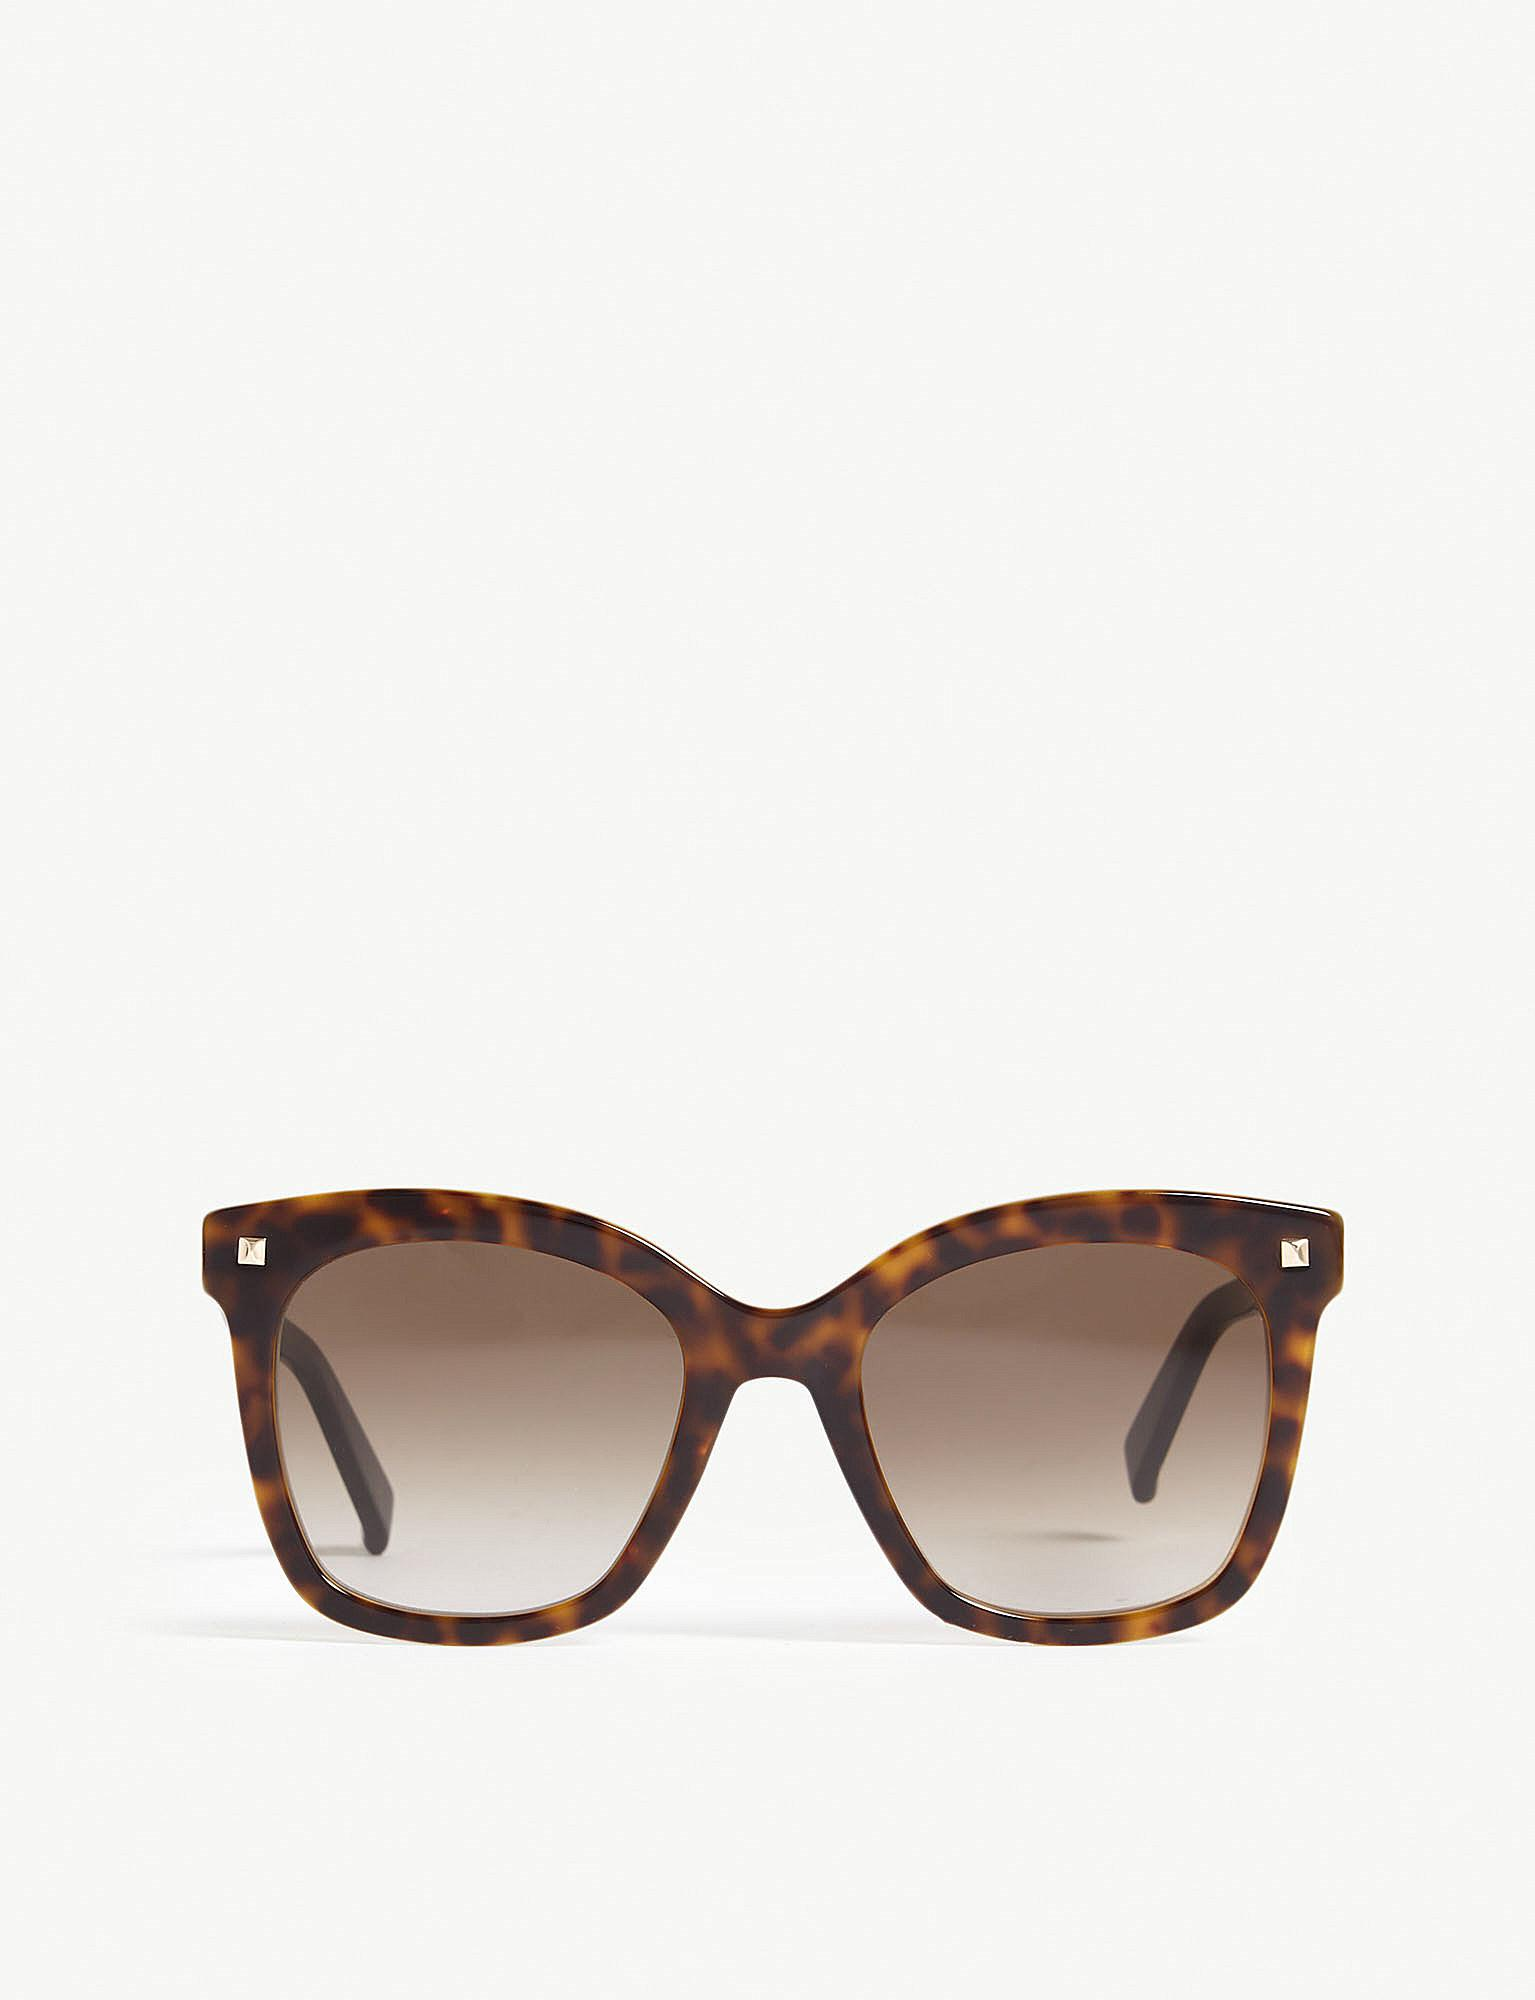 1f0229216689 Lyst - Max Mara Dots Ii Square-frame Tortoiseshell Sunglasses in Brown